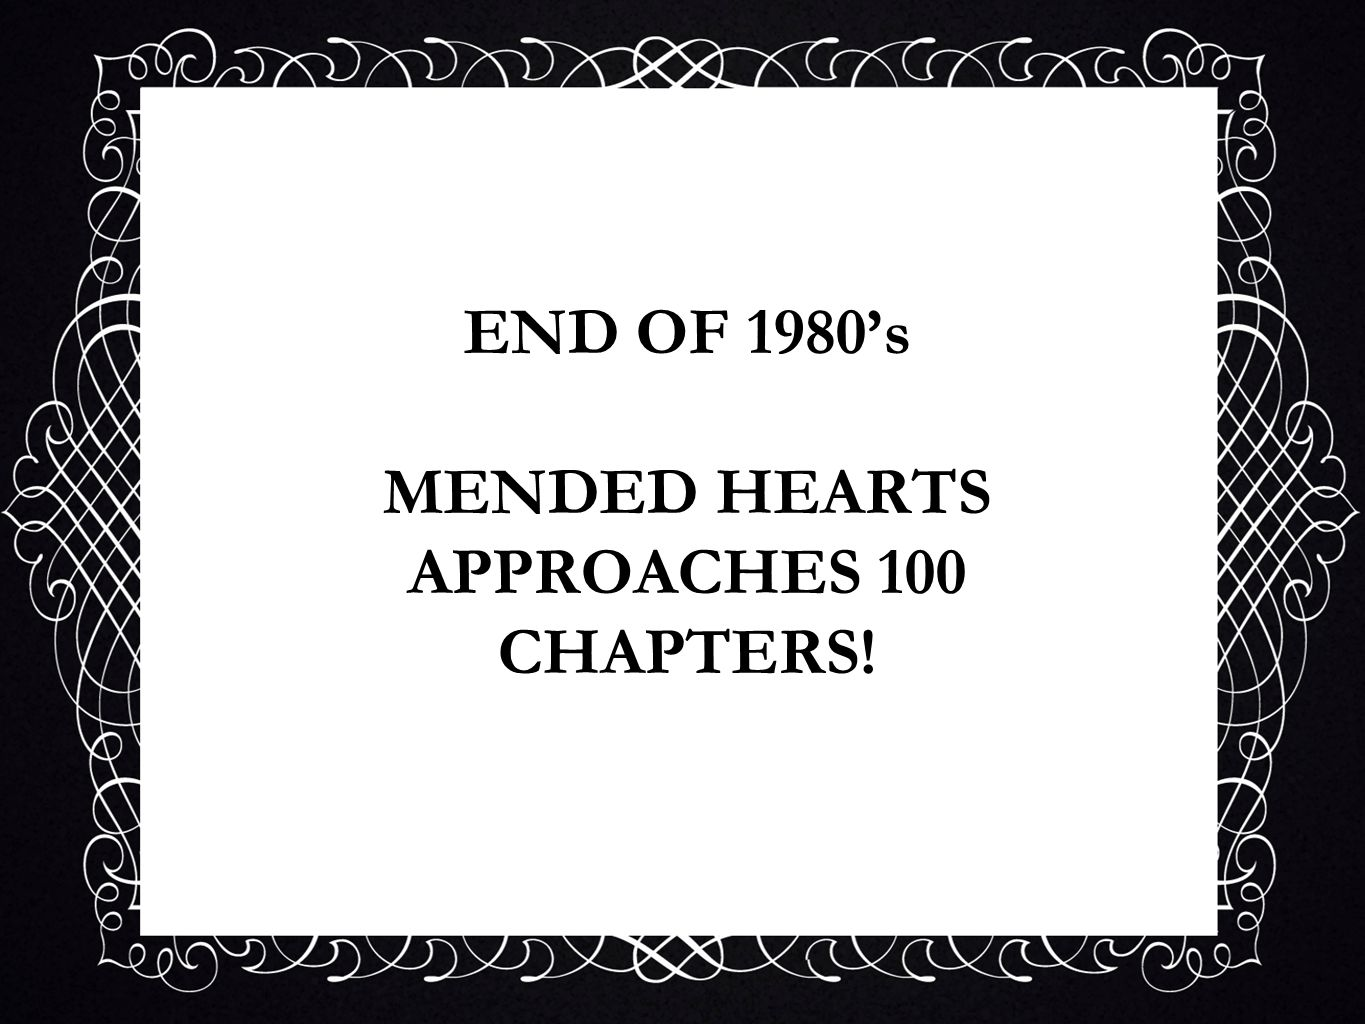 END OF 1980's MENDED HEARTS APPROACHES 100 CHAPTERS!